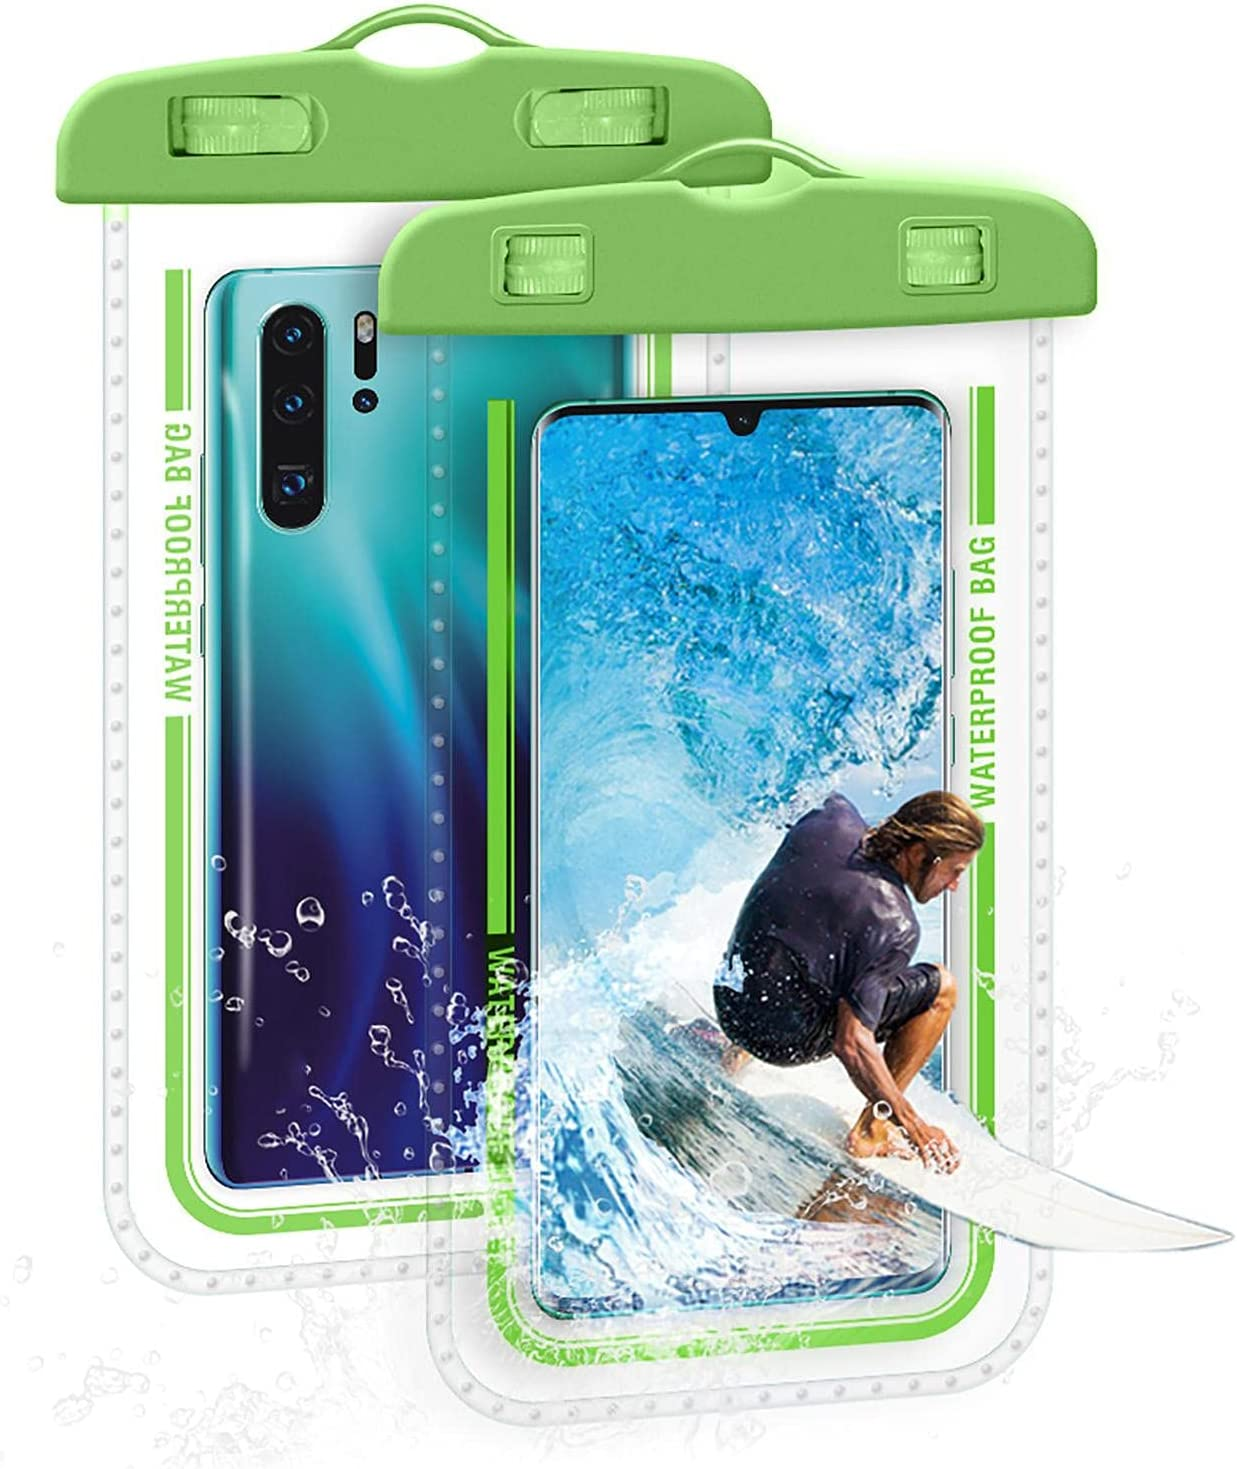 Mona43Henry Universal Waterproof Phone Bag, 7 Inches Waterproof Phone Pouch, Full-Screen Transparent Touch Sensitive Cellphone Dry Bag, Super Tightness Underwater Case Greater